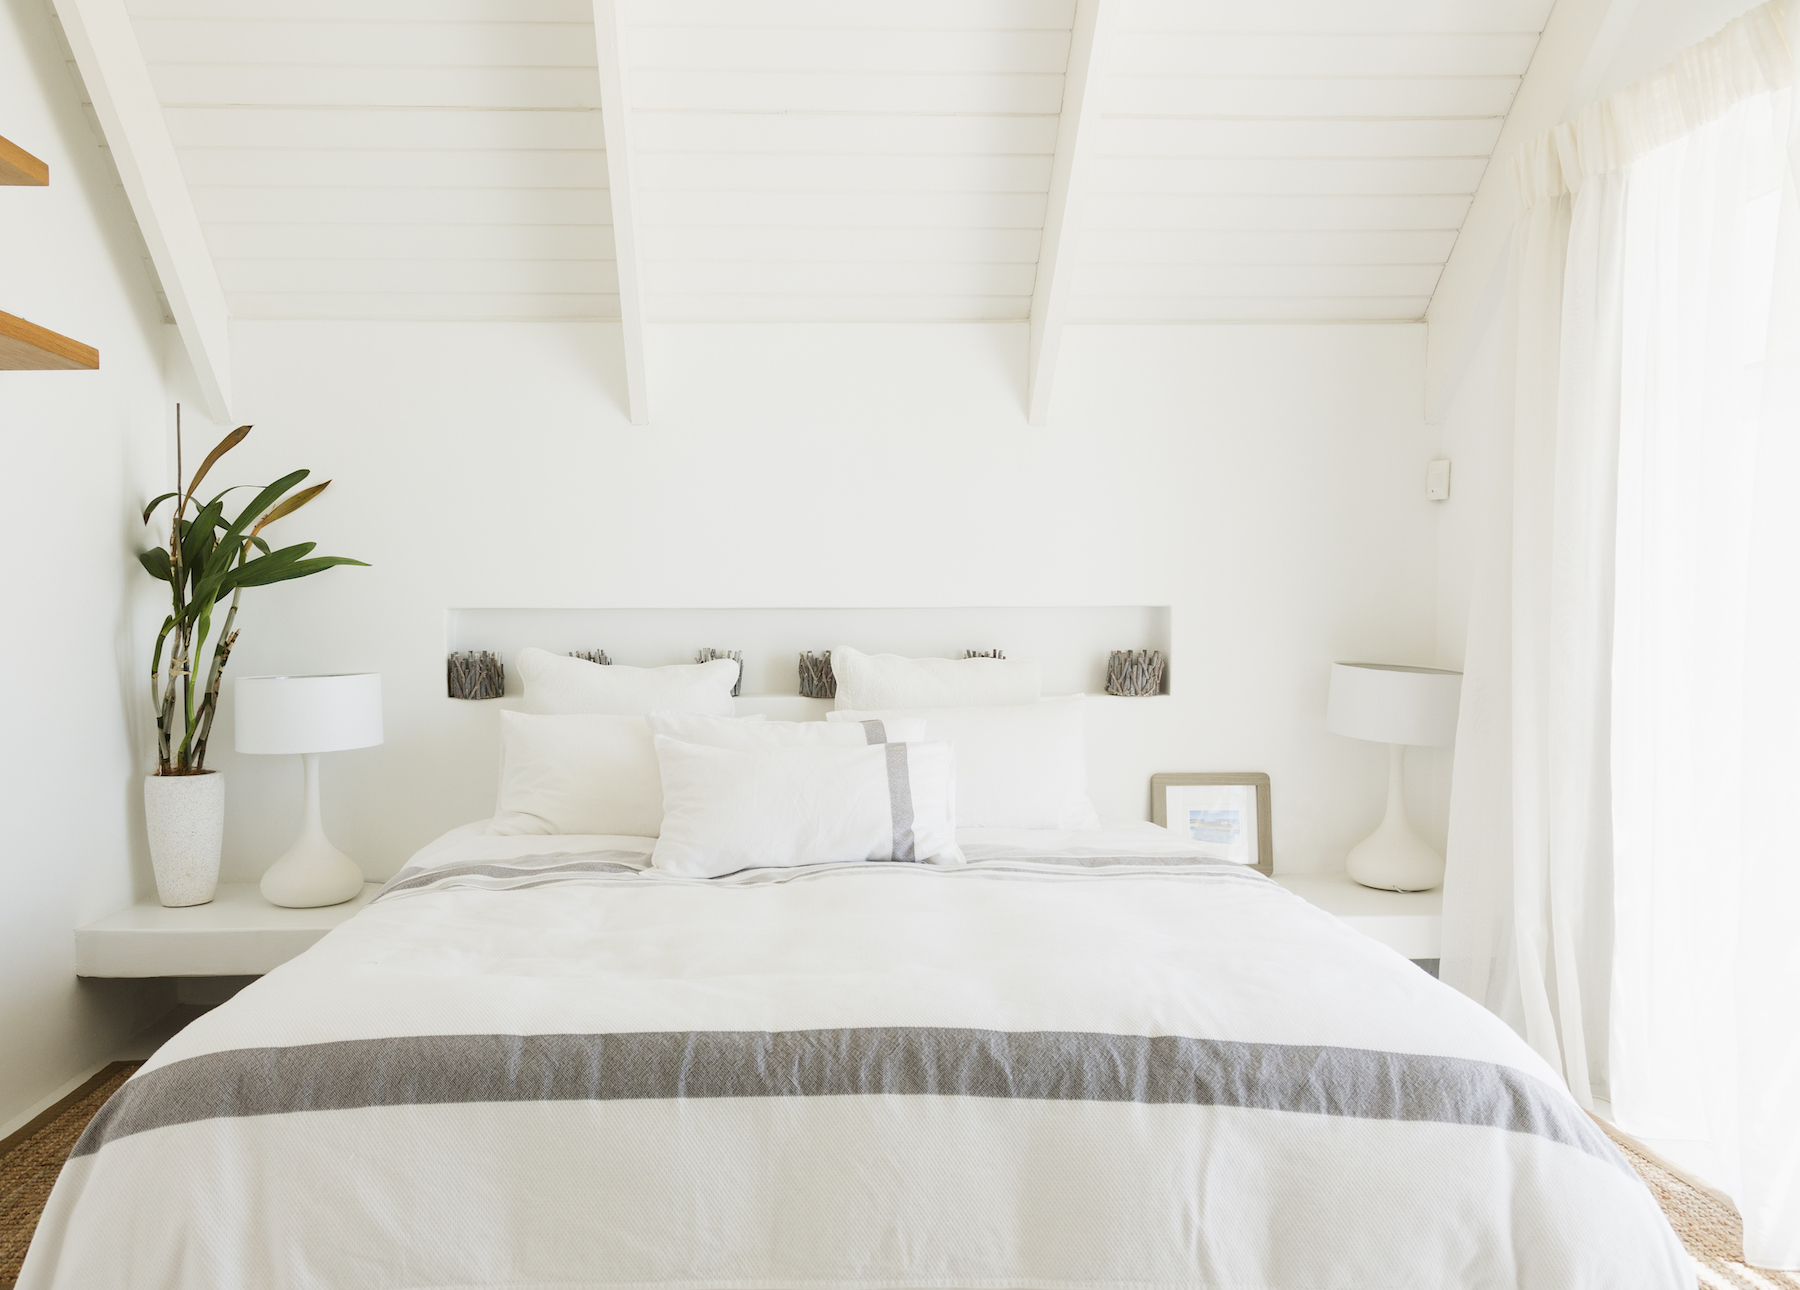 White Minimalist Bedroom with plant, bed, and pillows